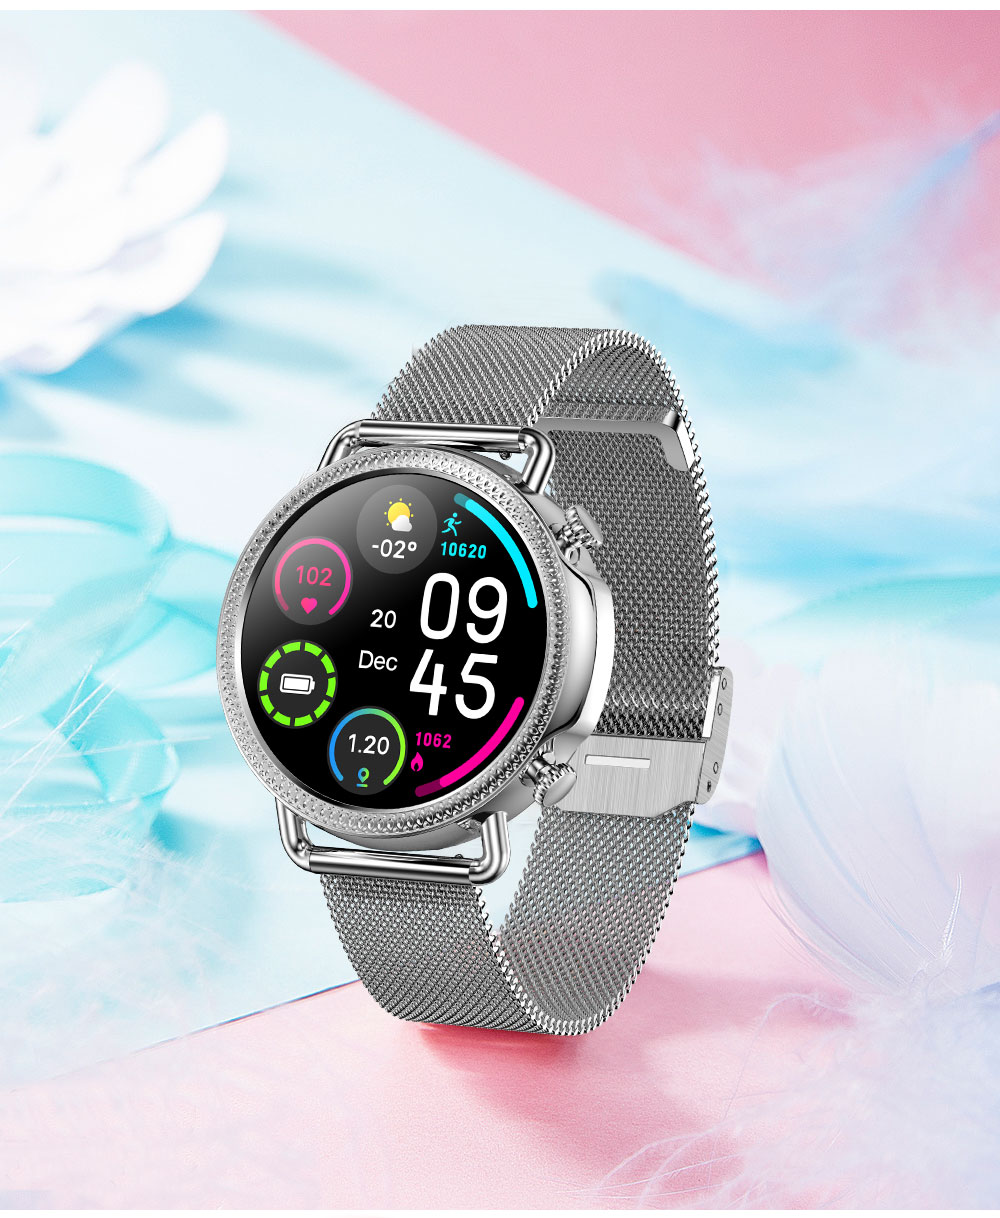 Hc95306639fc74a80bcfae5a8519752f3q 2021 Women Smart Watch 1.28 inch HD Screen IP67 Waterproof Lady's Watches Body Temperature Heart Rate Monitor PK V23